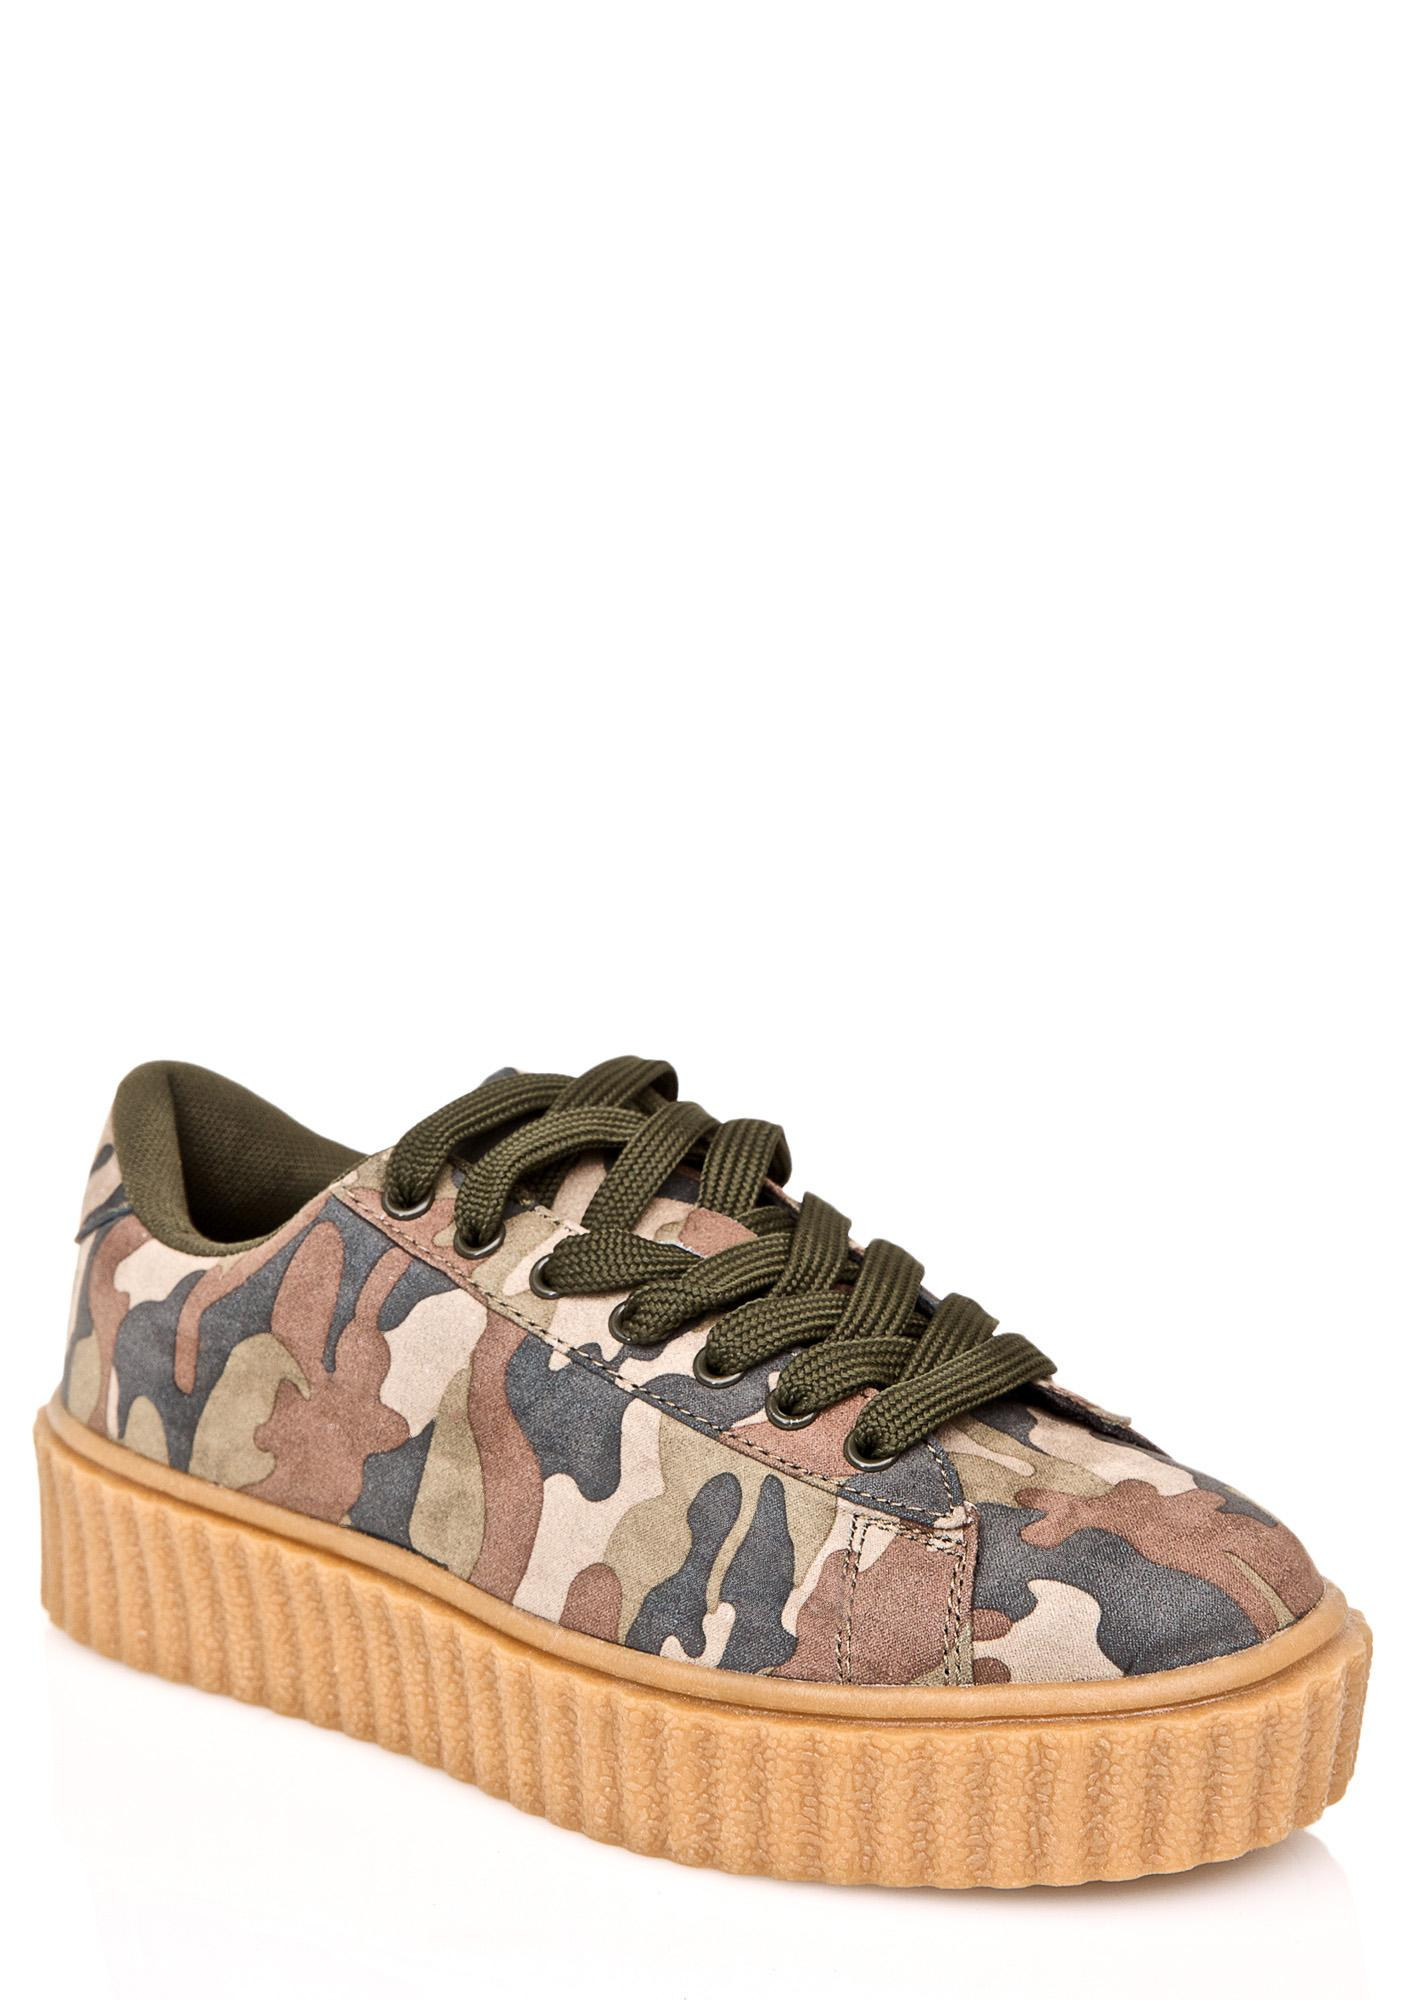 Camo Caught Me Creeper Sneakers